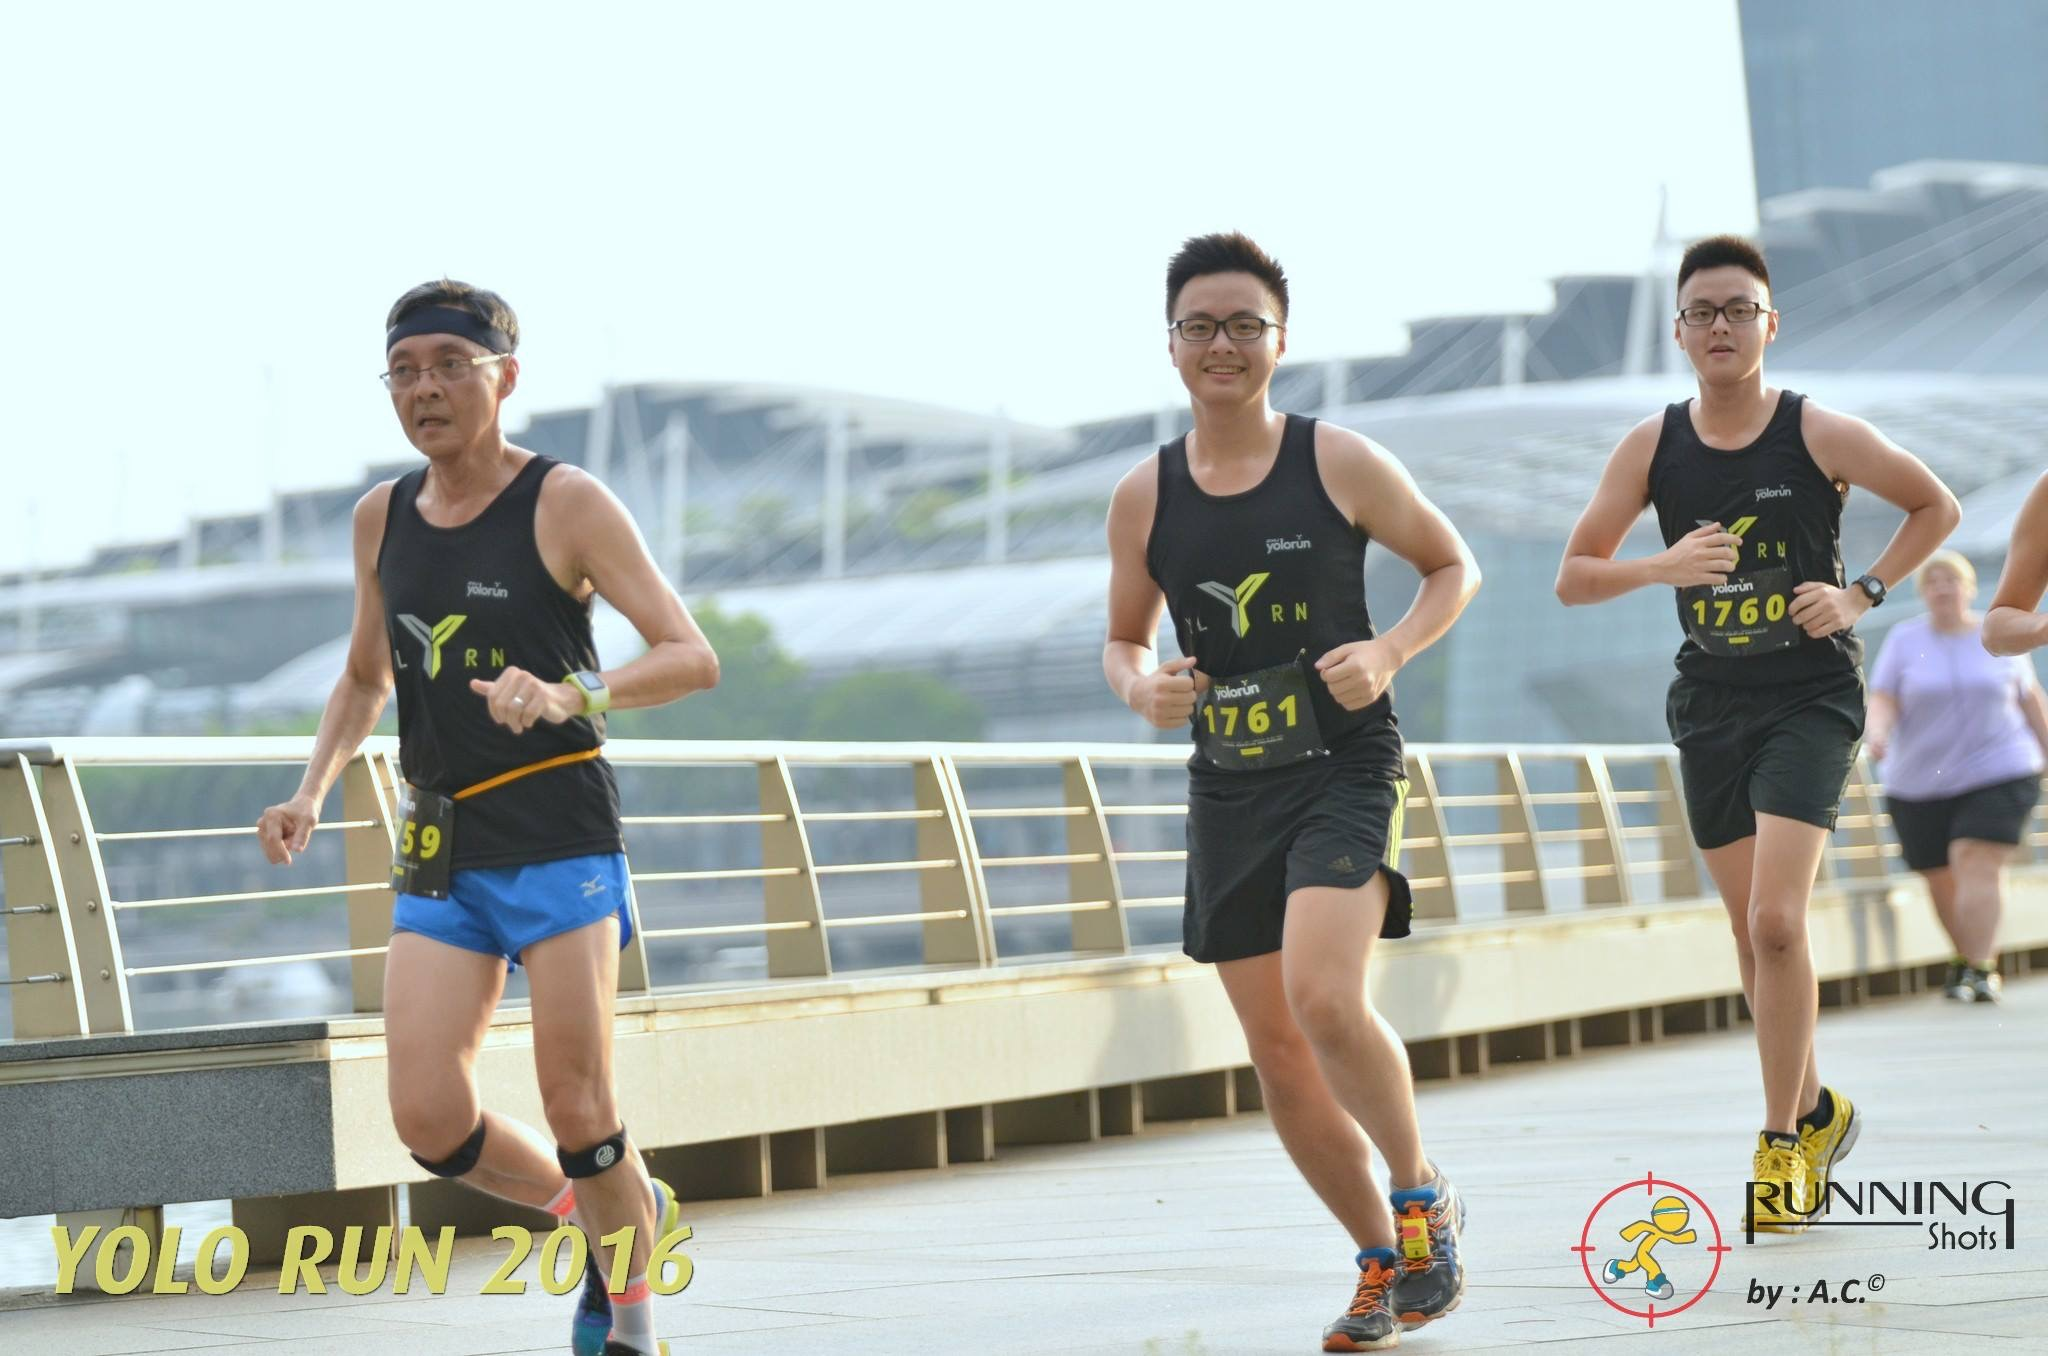 Leading my boys around the 5km mark